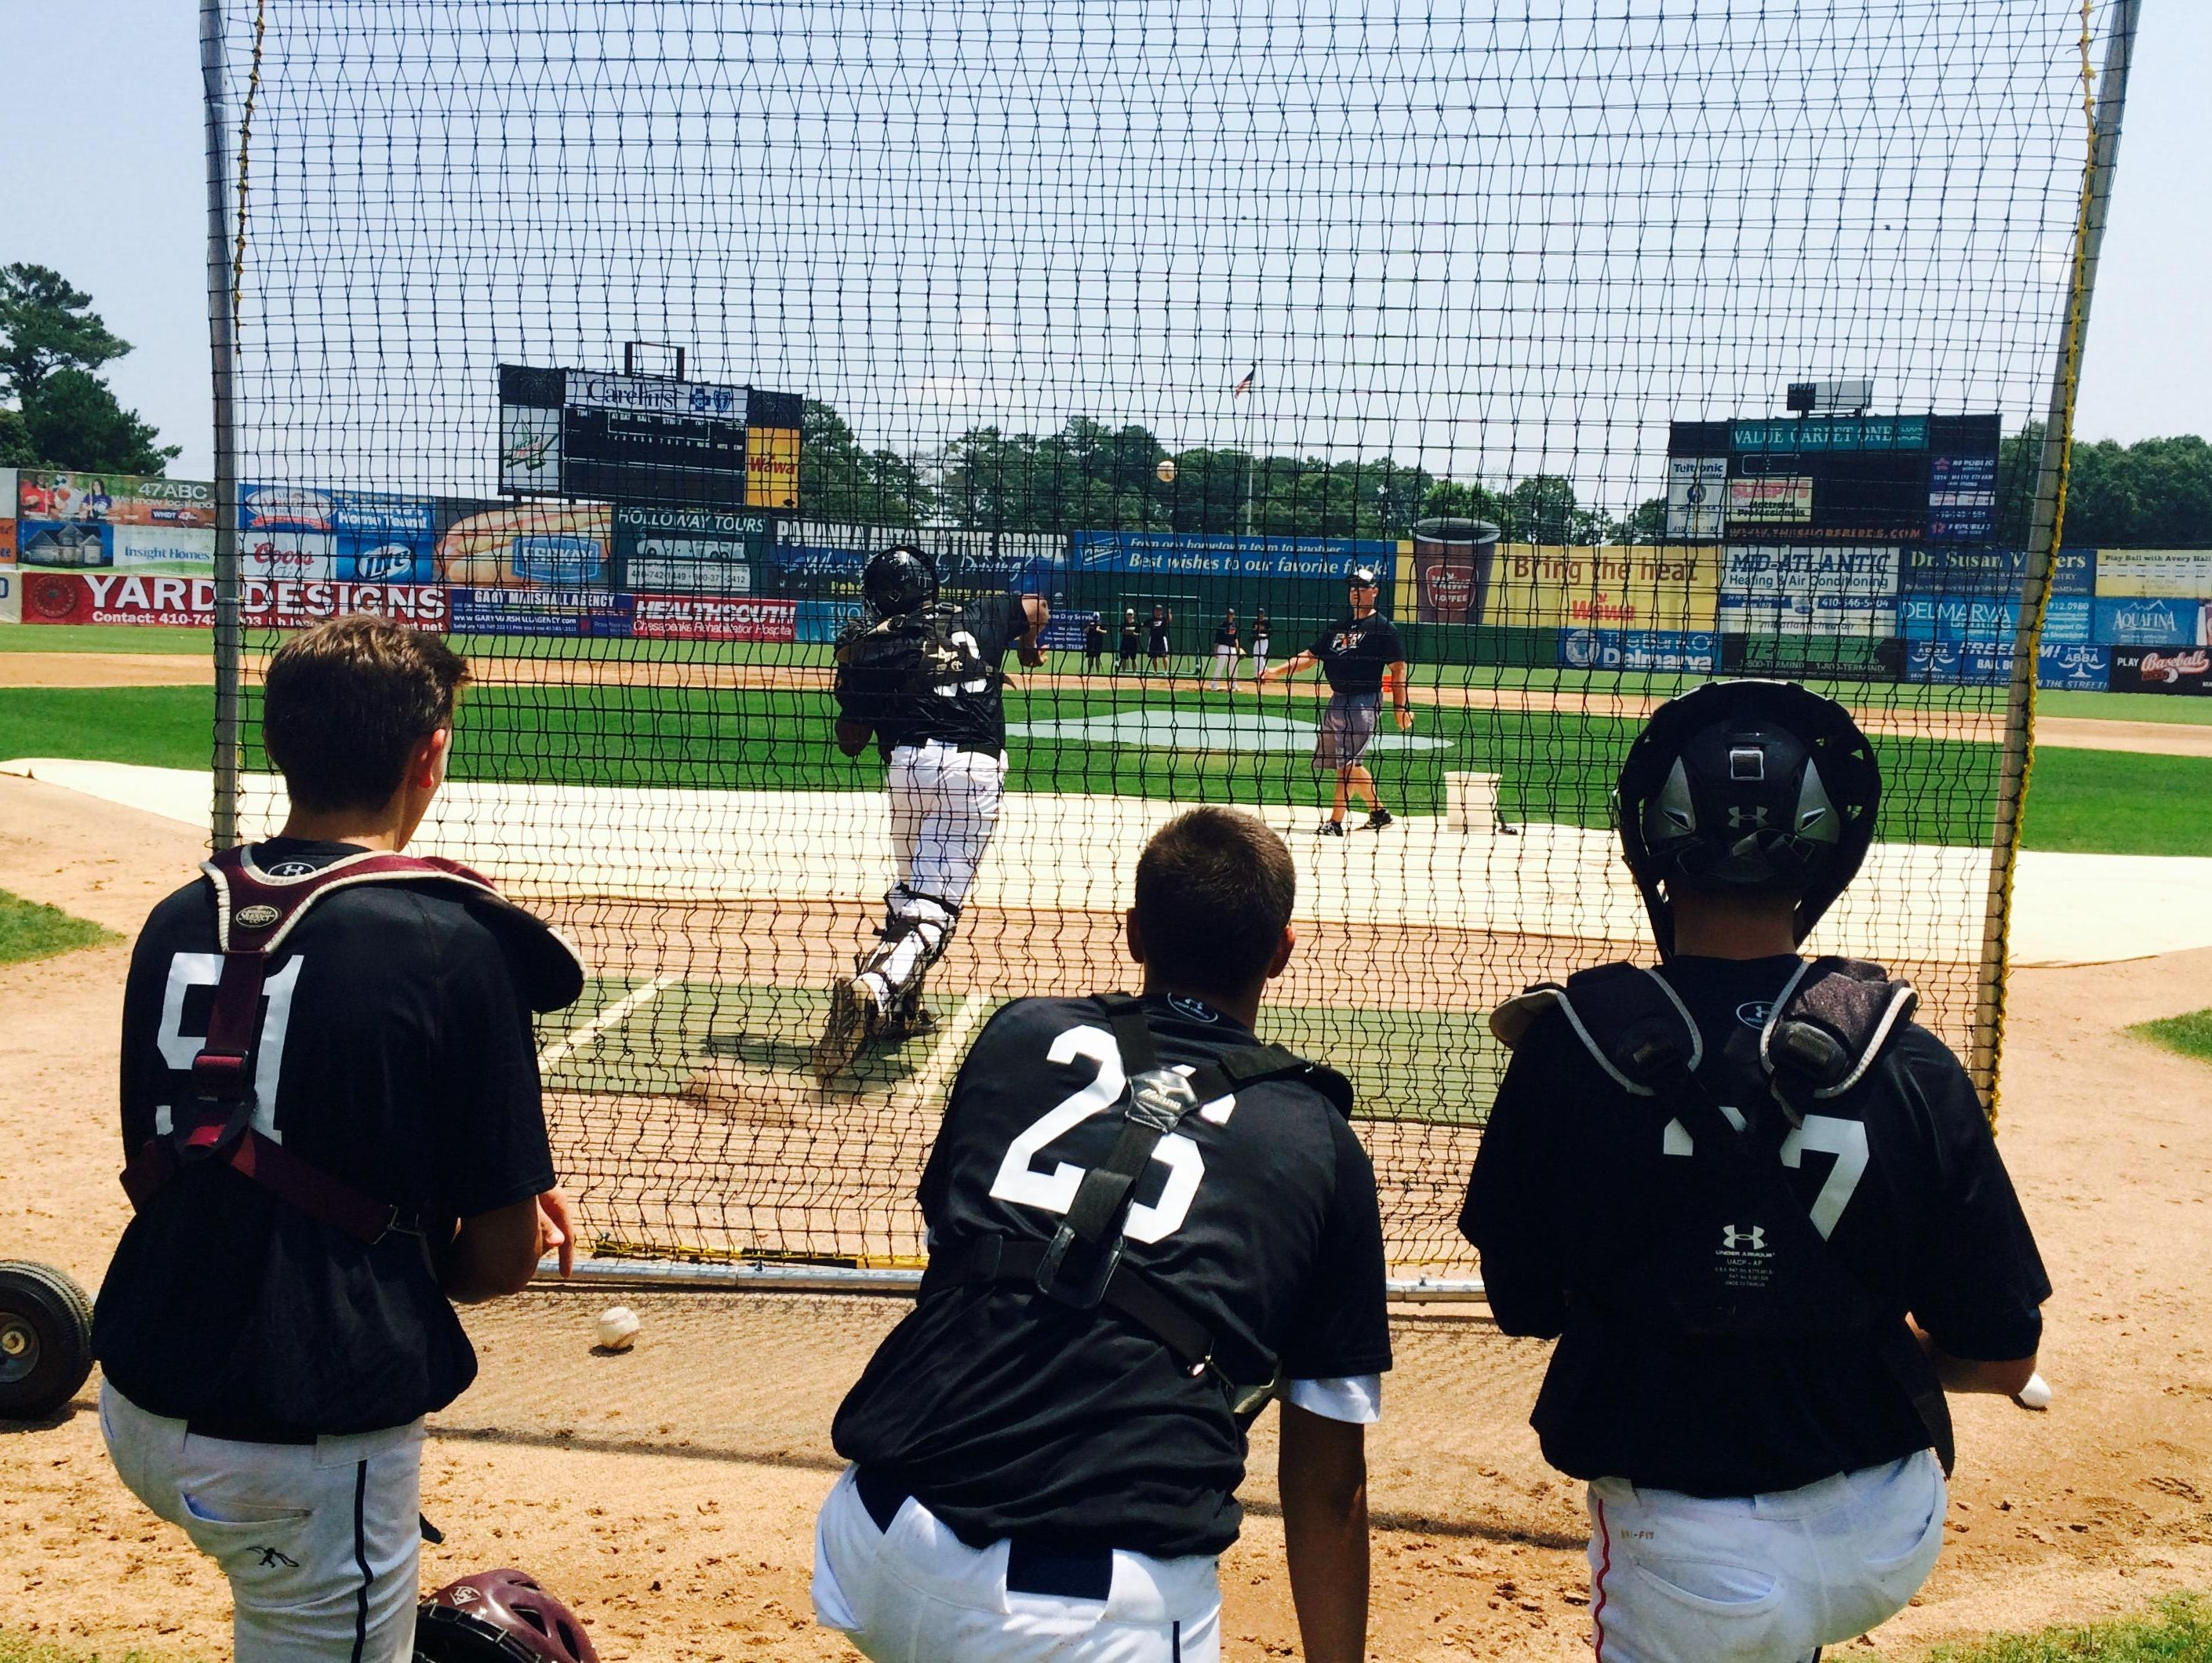 Players watch the catcher's drill at the Eastern Shore Showcase, a chance for rising prep stars to show off their talents.